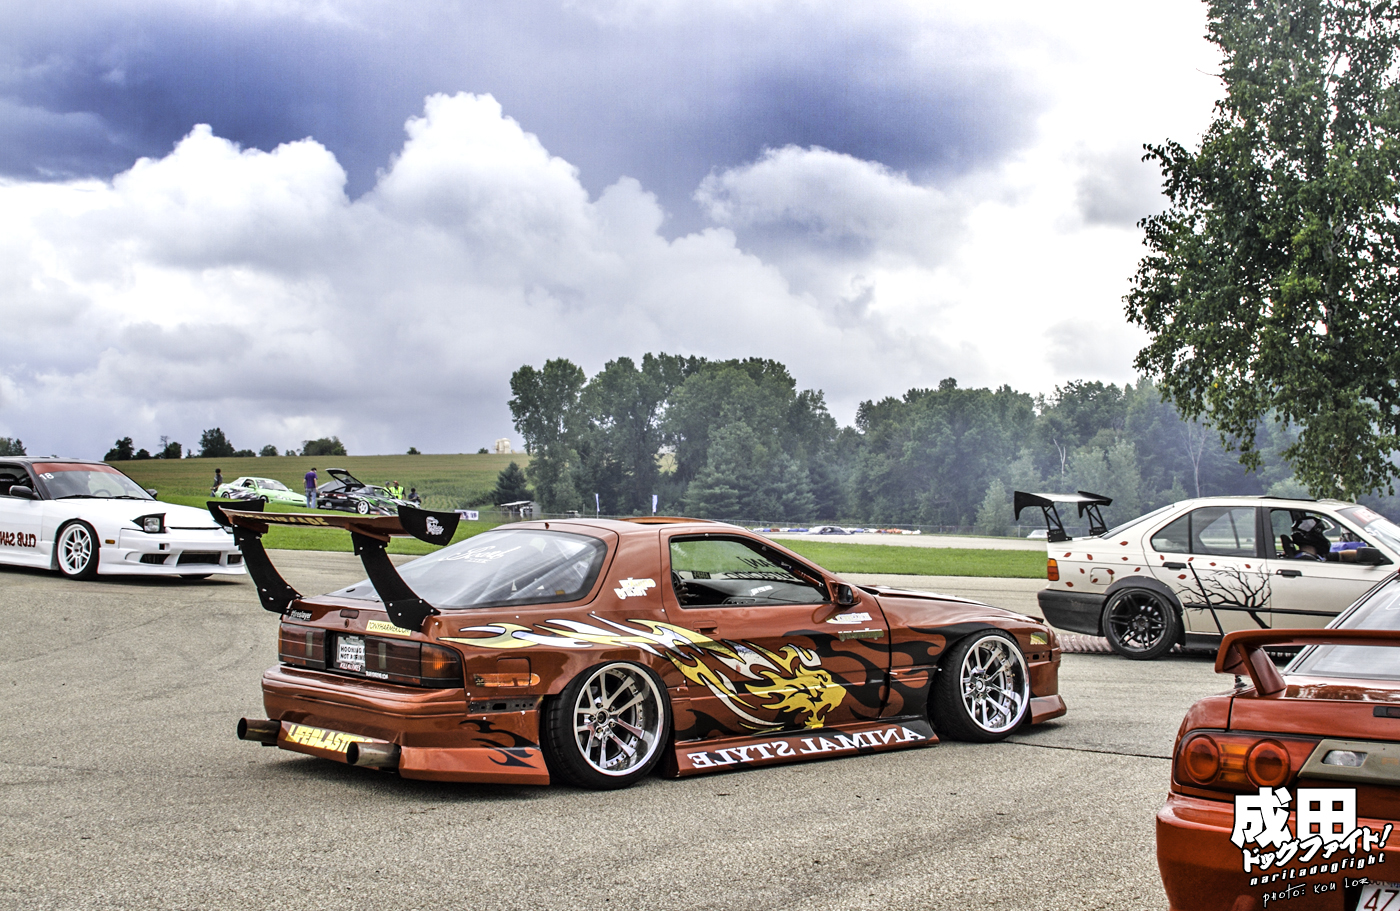 Drift team animal style 2014 parking lot fun - 1 5